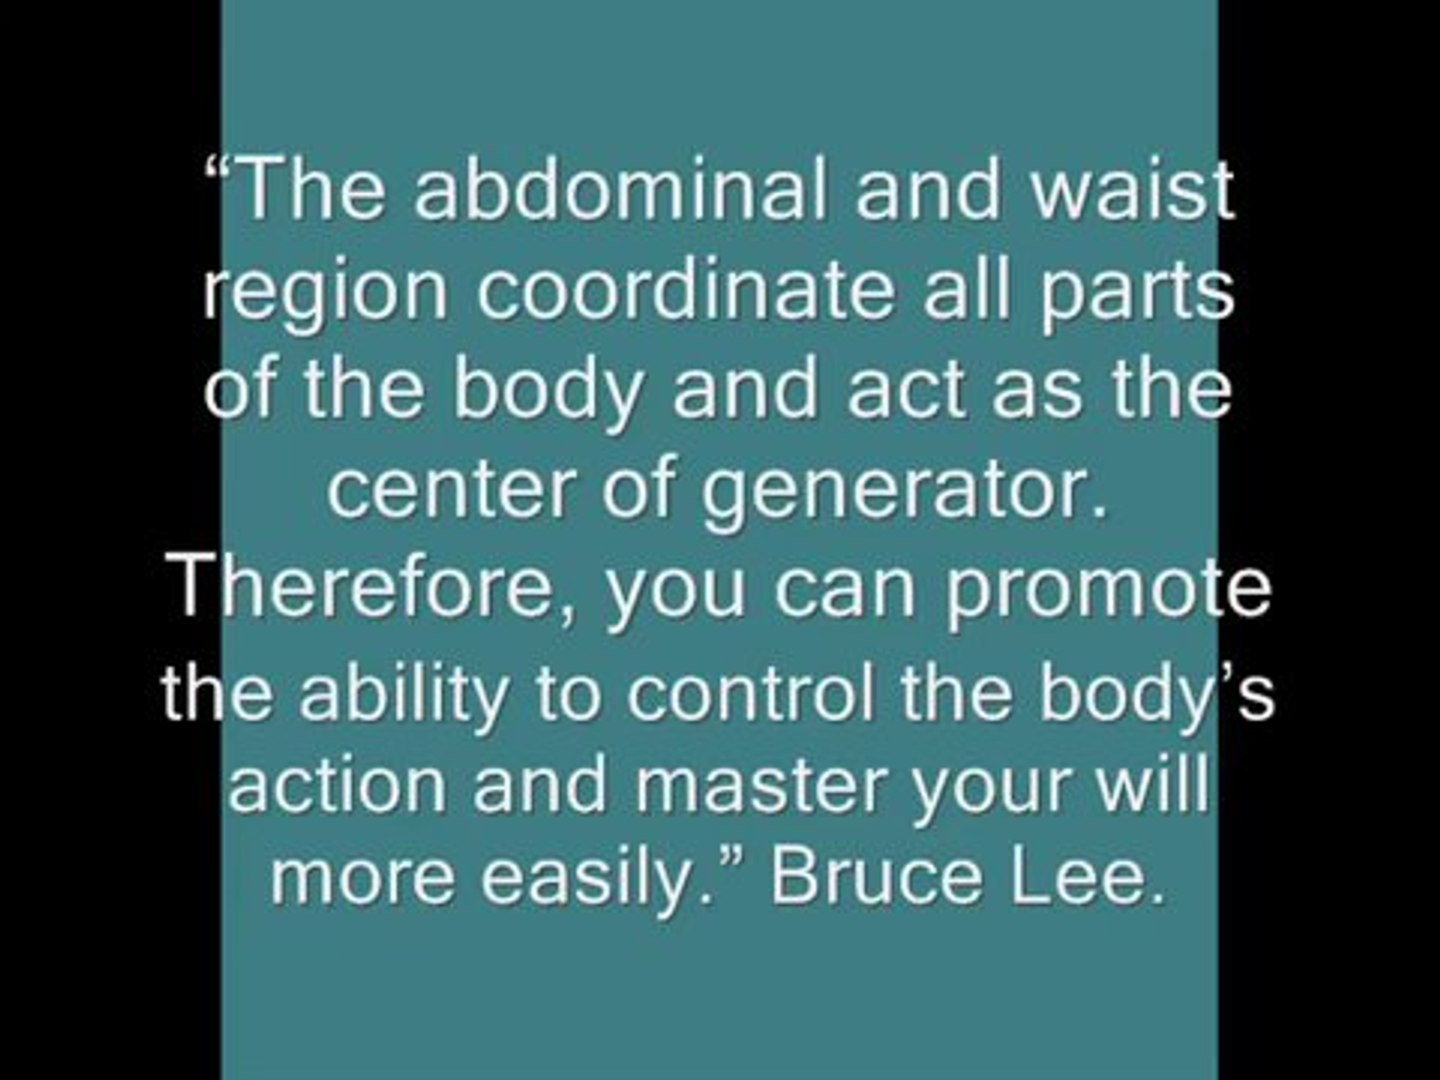 BRUCE LEE: ABS WORKOUT AND TRAINING TIPS - Fitness/Bodybuilding/Martial Arts